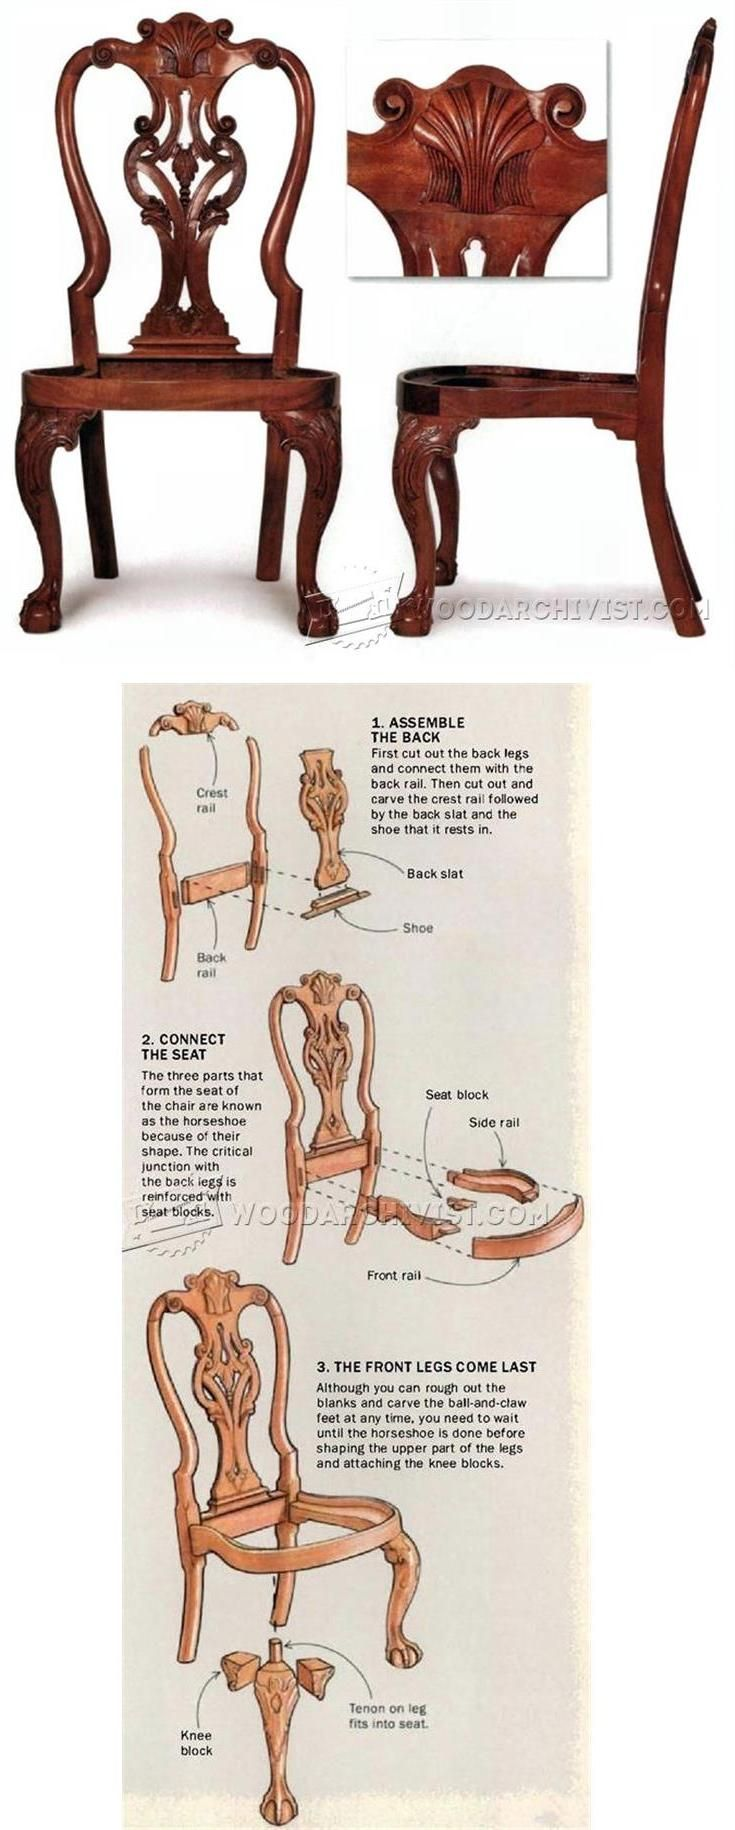 Queen anne chair history - Queen Anne Side Chair Plans Furniture Plans And Projects Woodarchivist Com